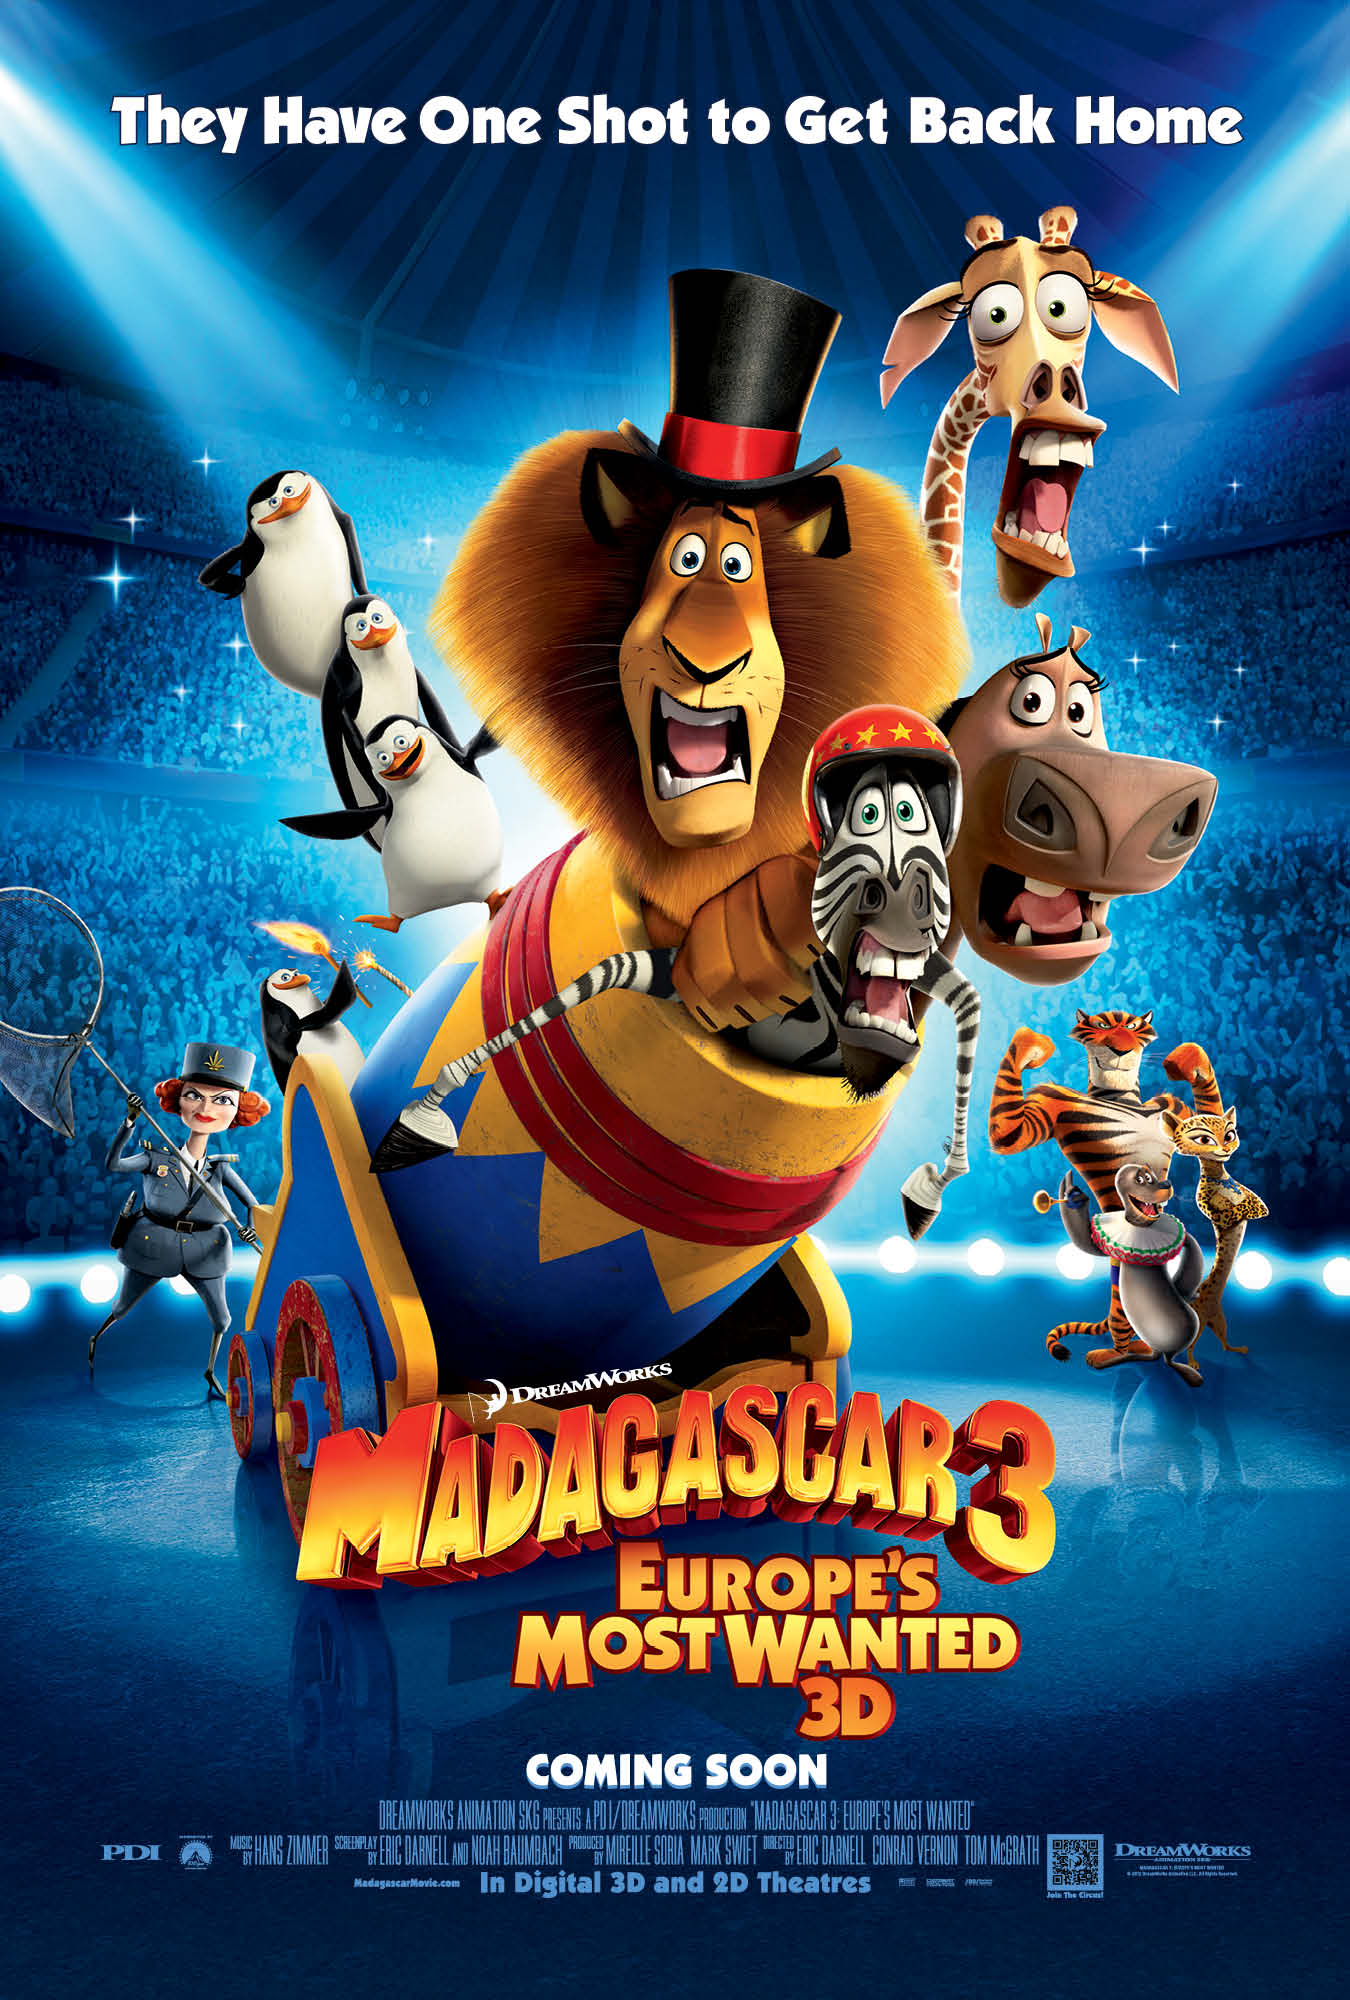 MADAGASCAR 3: EUROPE'S MOST WANTED - Music by Hans Zimmer Assistant Music Editing by Jessica Weiss